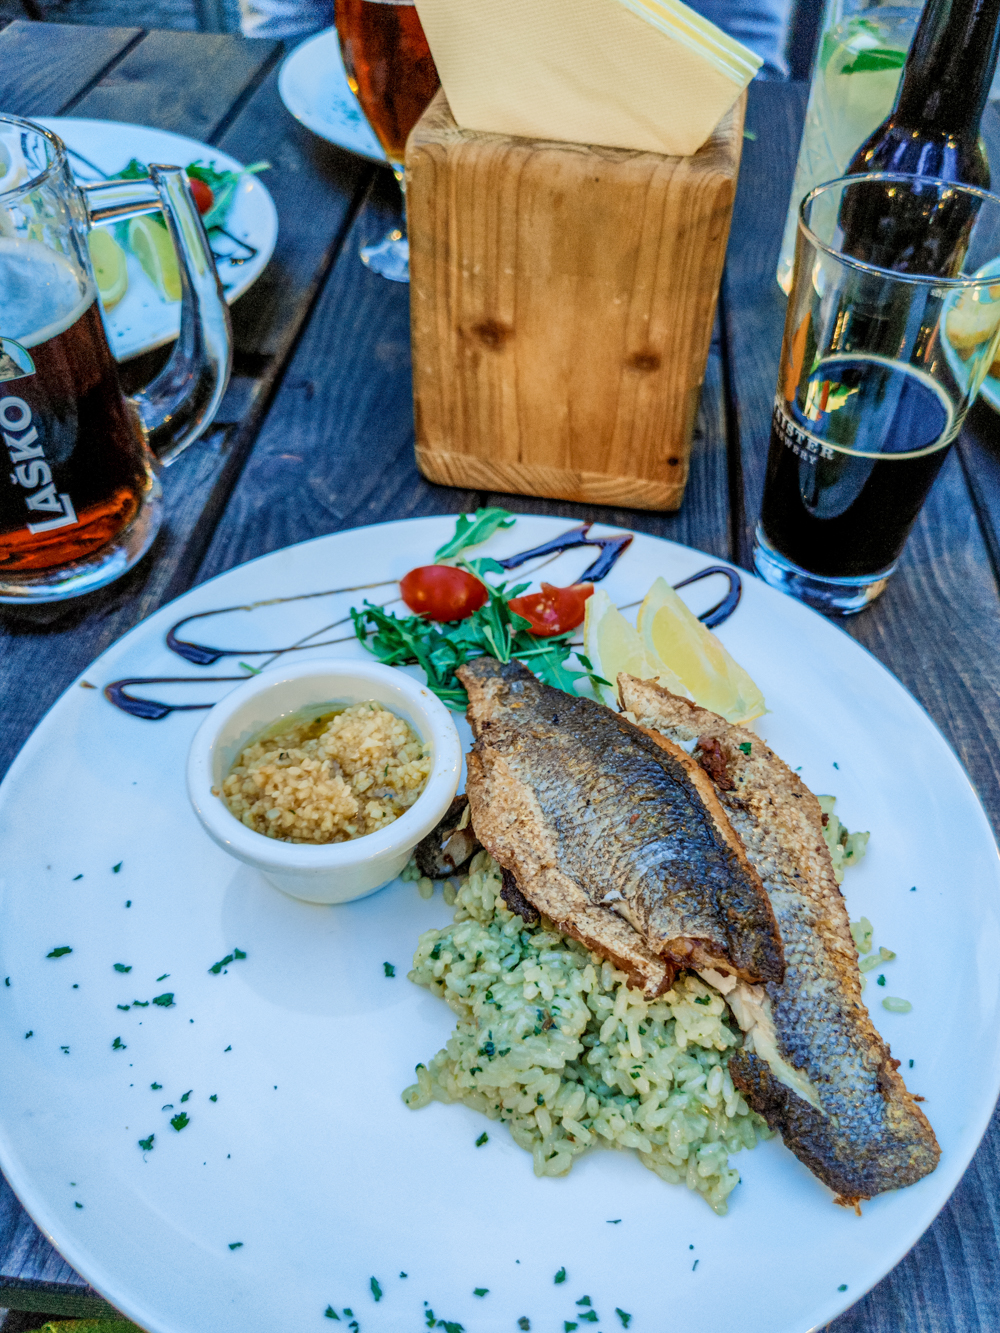 Where to eat in Bled? - Restavracija Camping Bled - 4-day Slovenia travel itinerary for the best outdoor adventures | Aliz's Wonderland